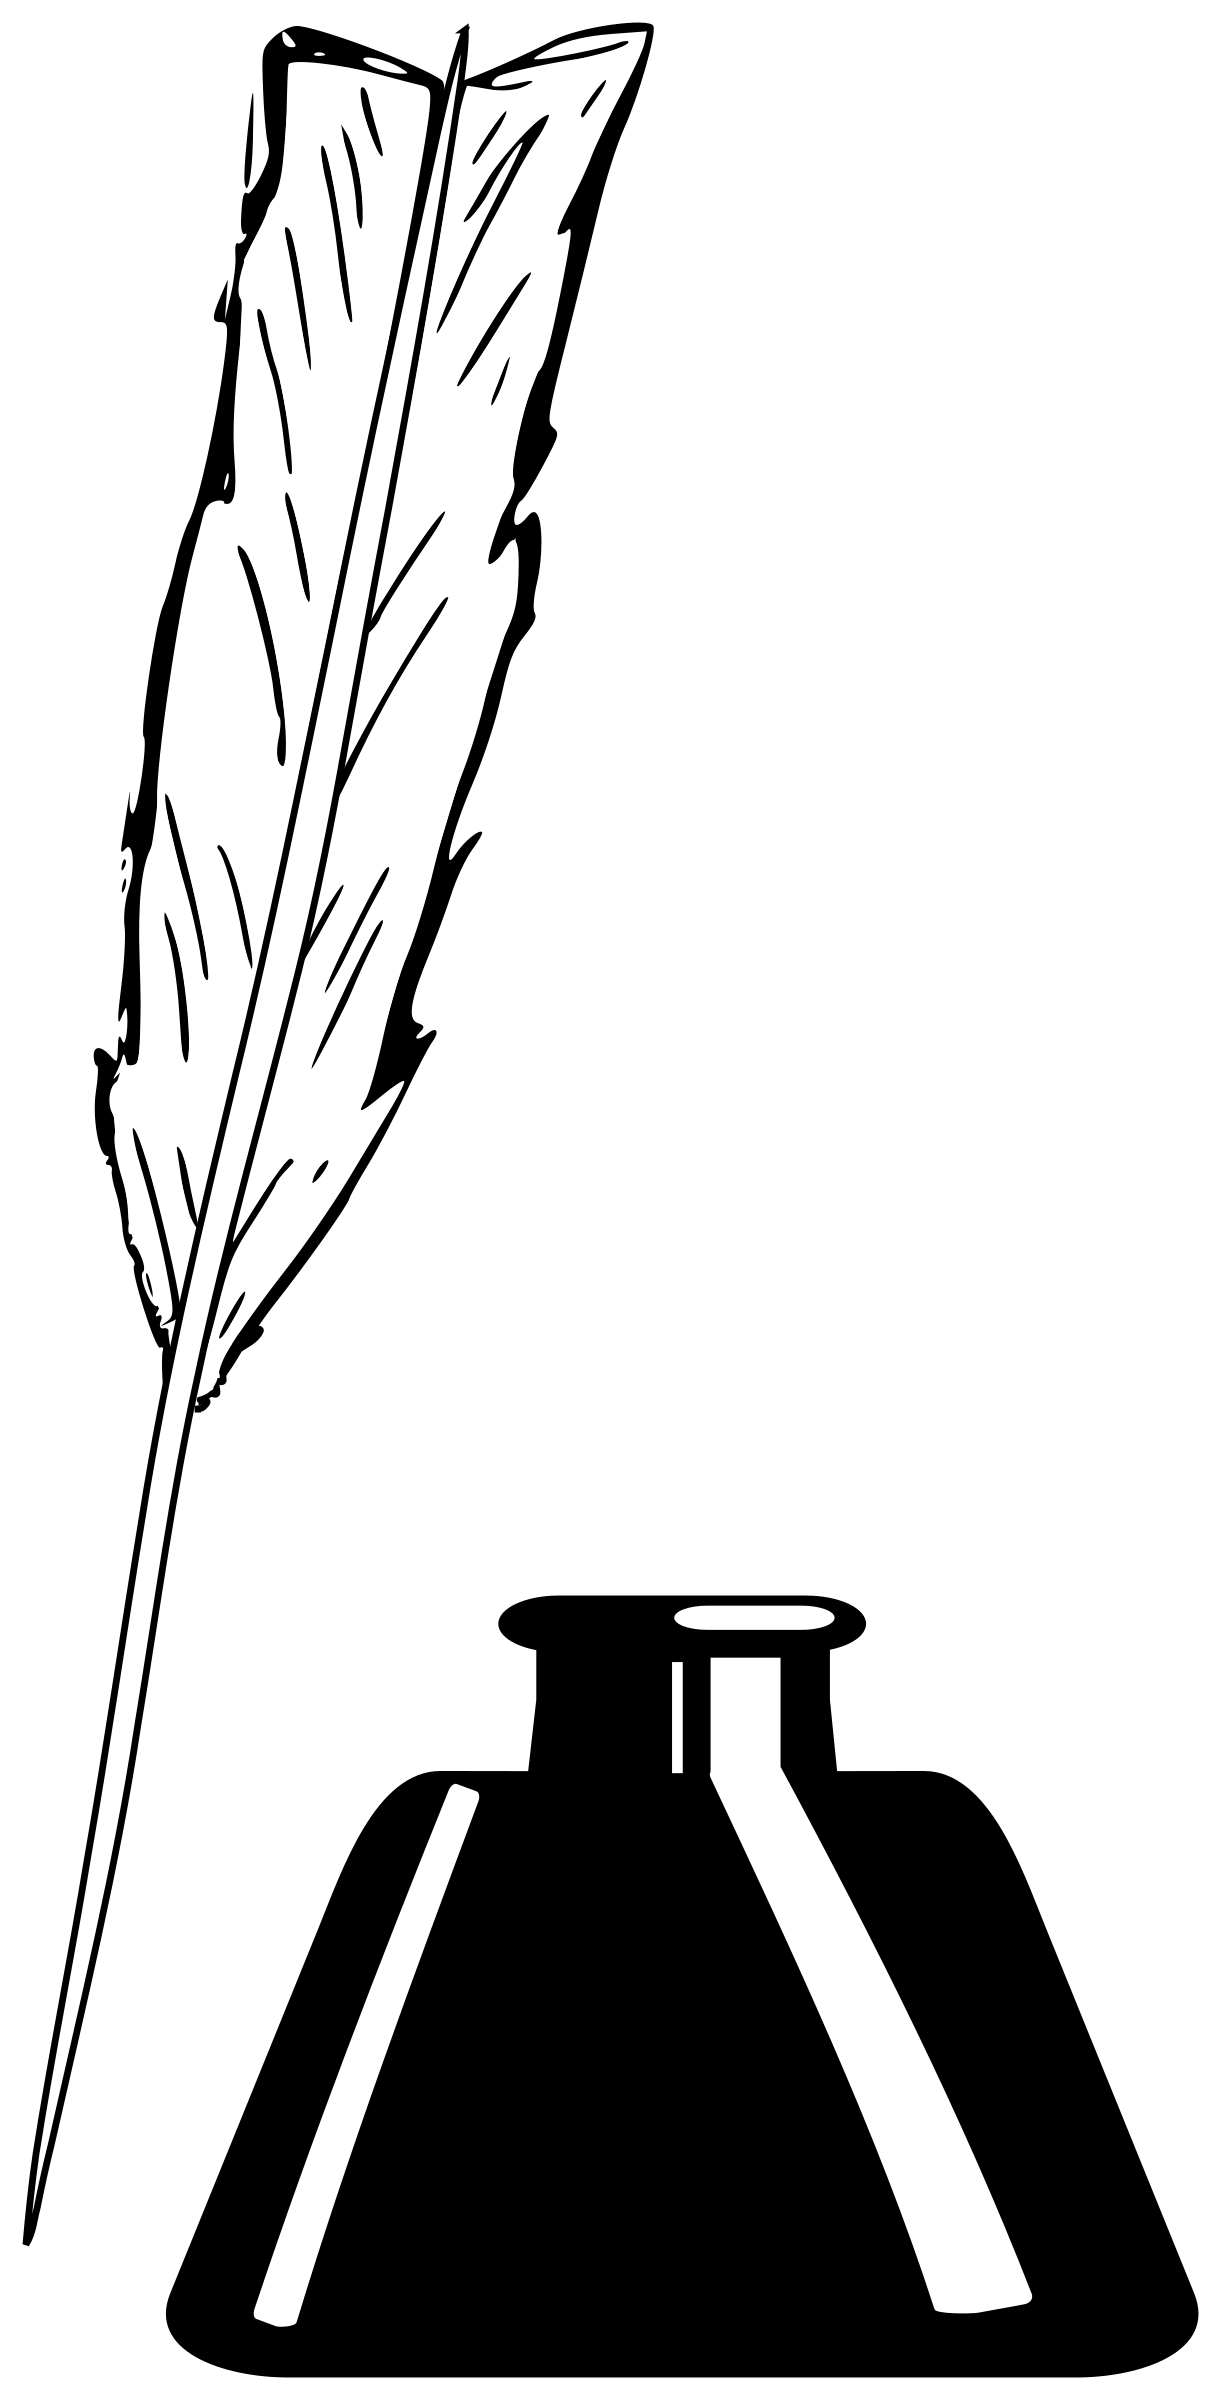 Quill clipart ink bottle #4